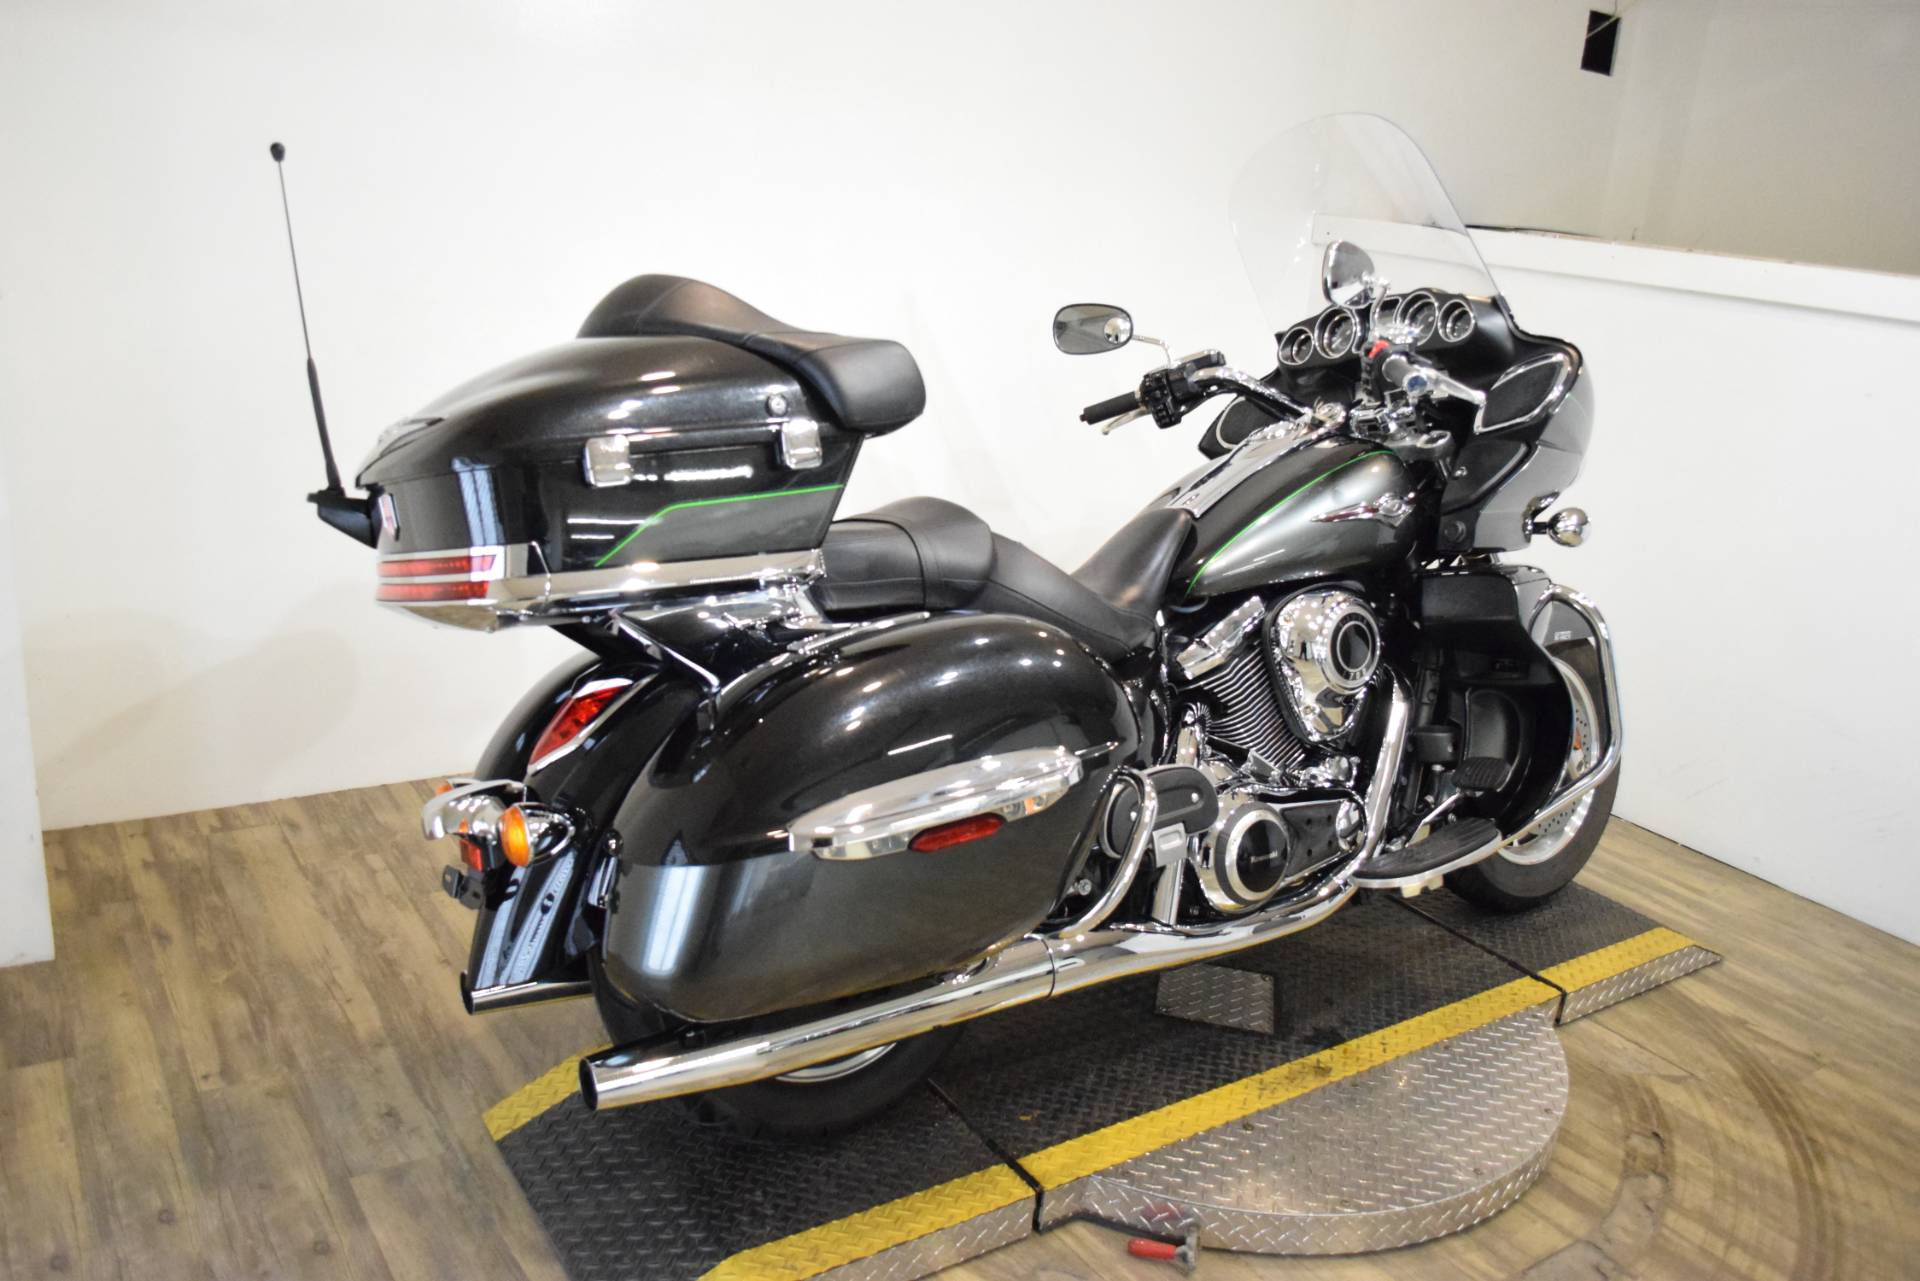 2017 Kawasaki Vulcan 1700 Voyager ABS in Wauconda, Illinois - Photo 9